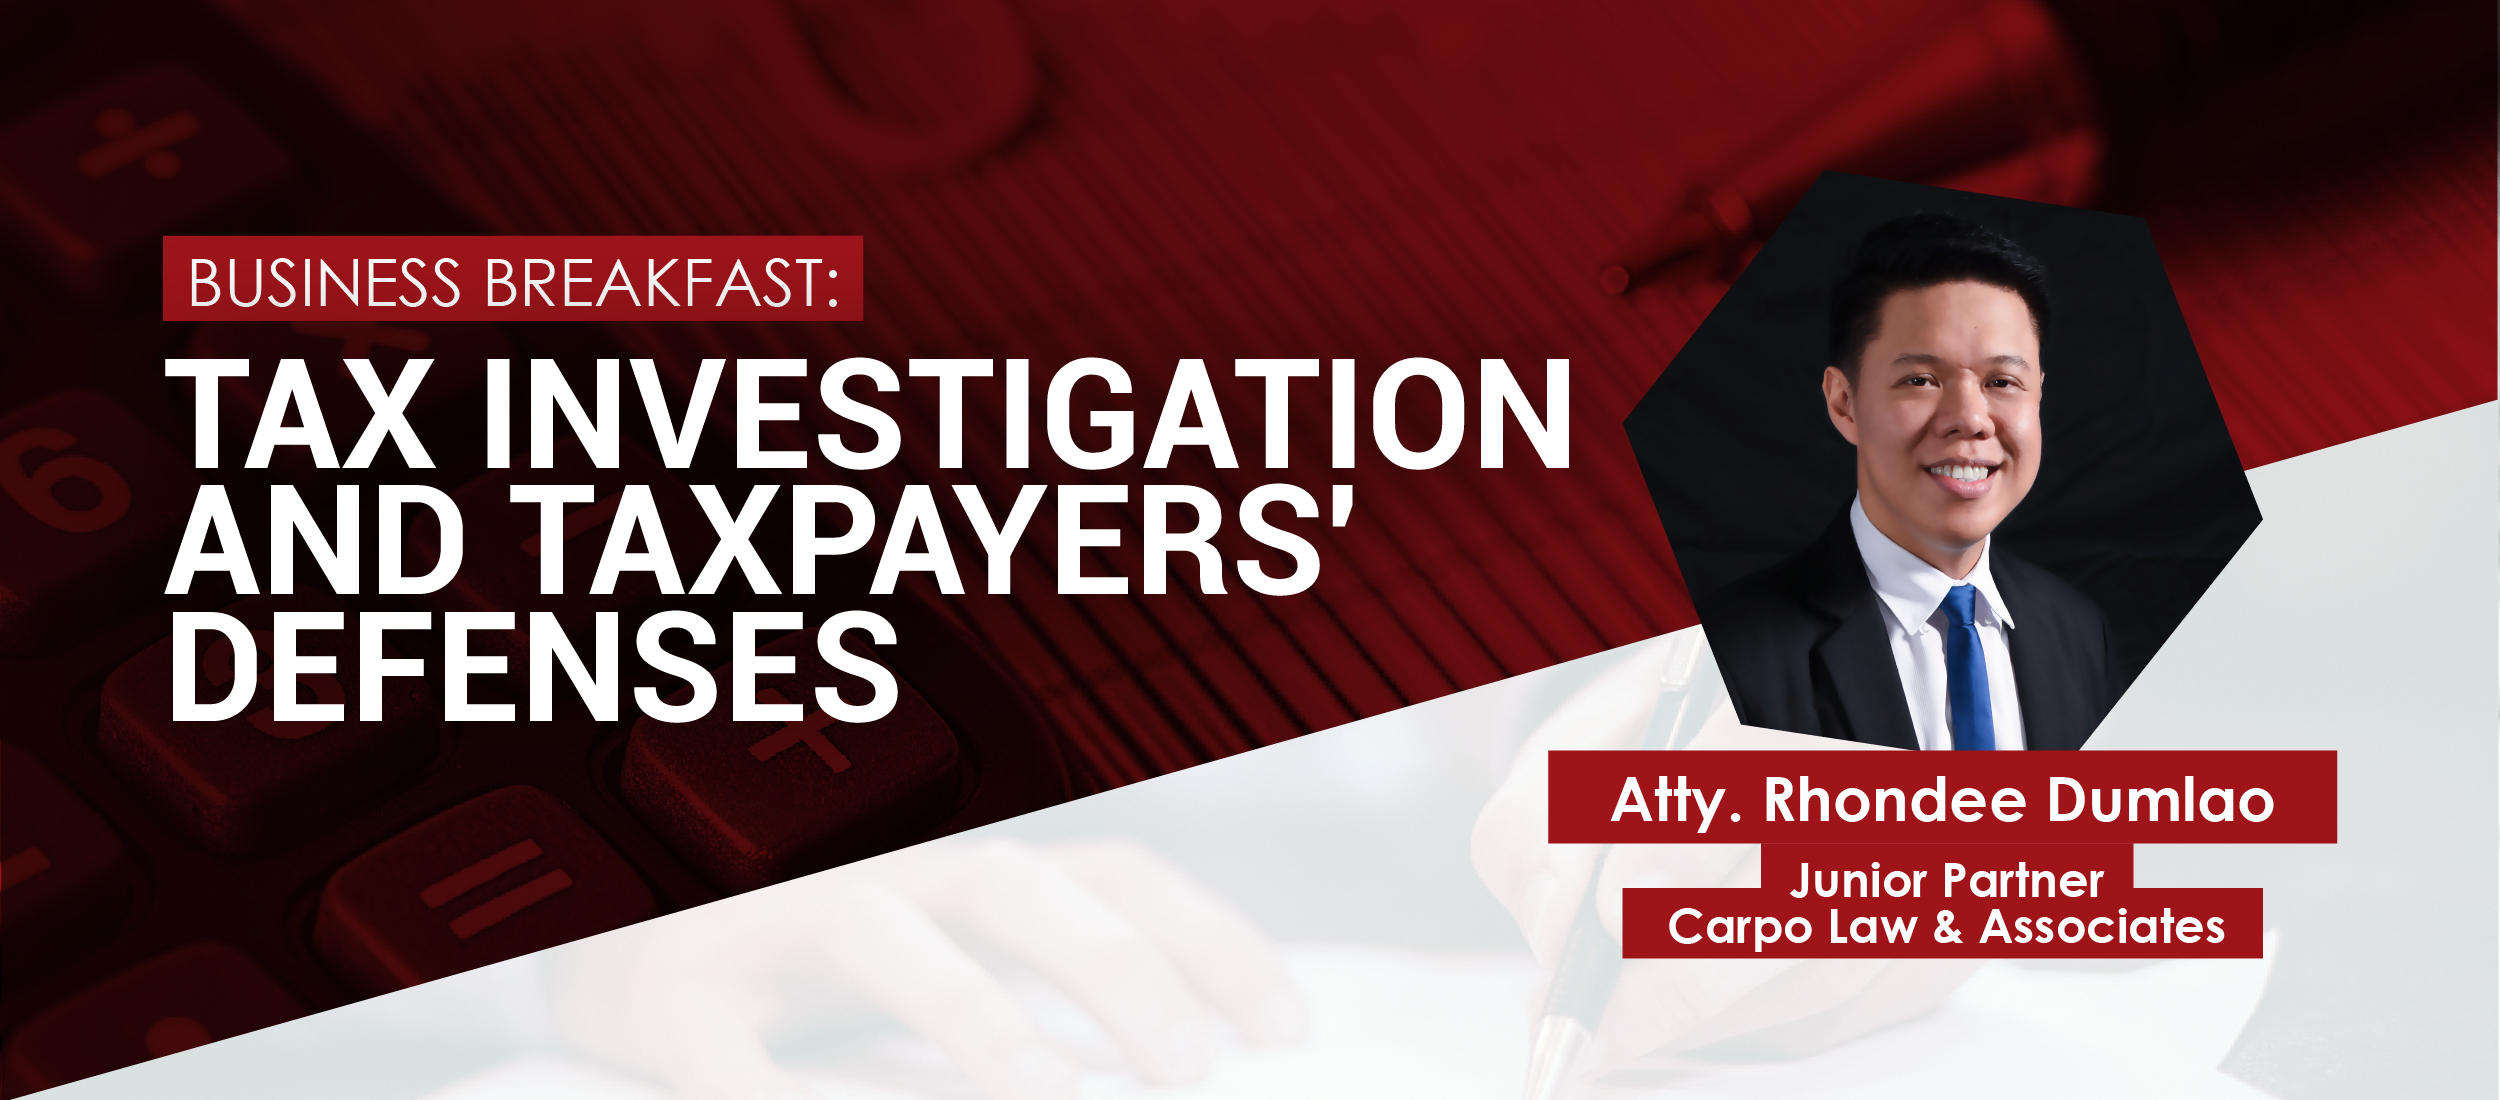 Tax Investigation and Taxpayers Defenses